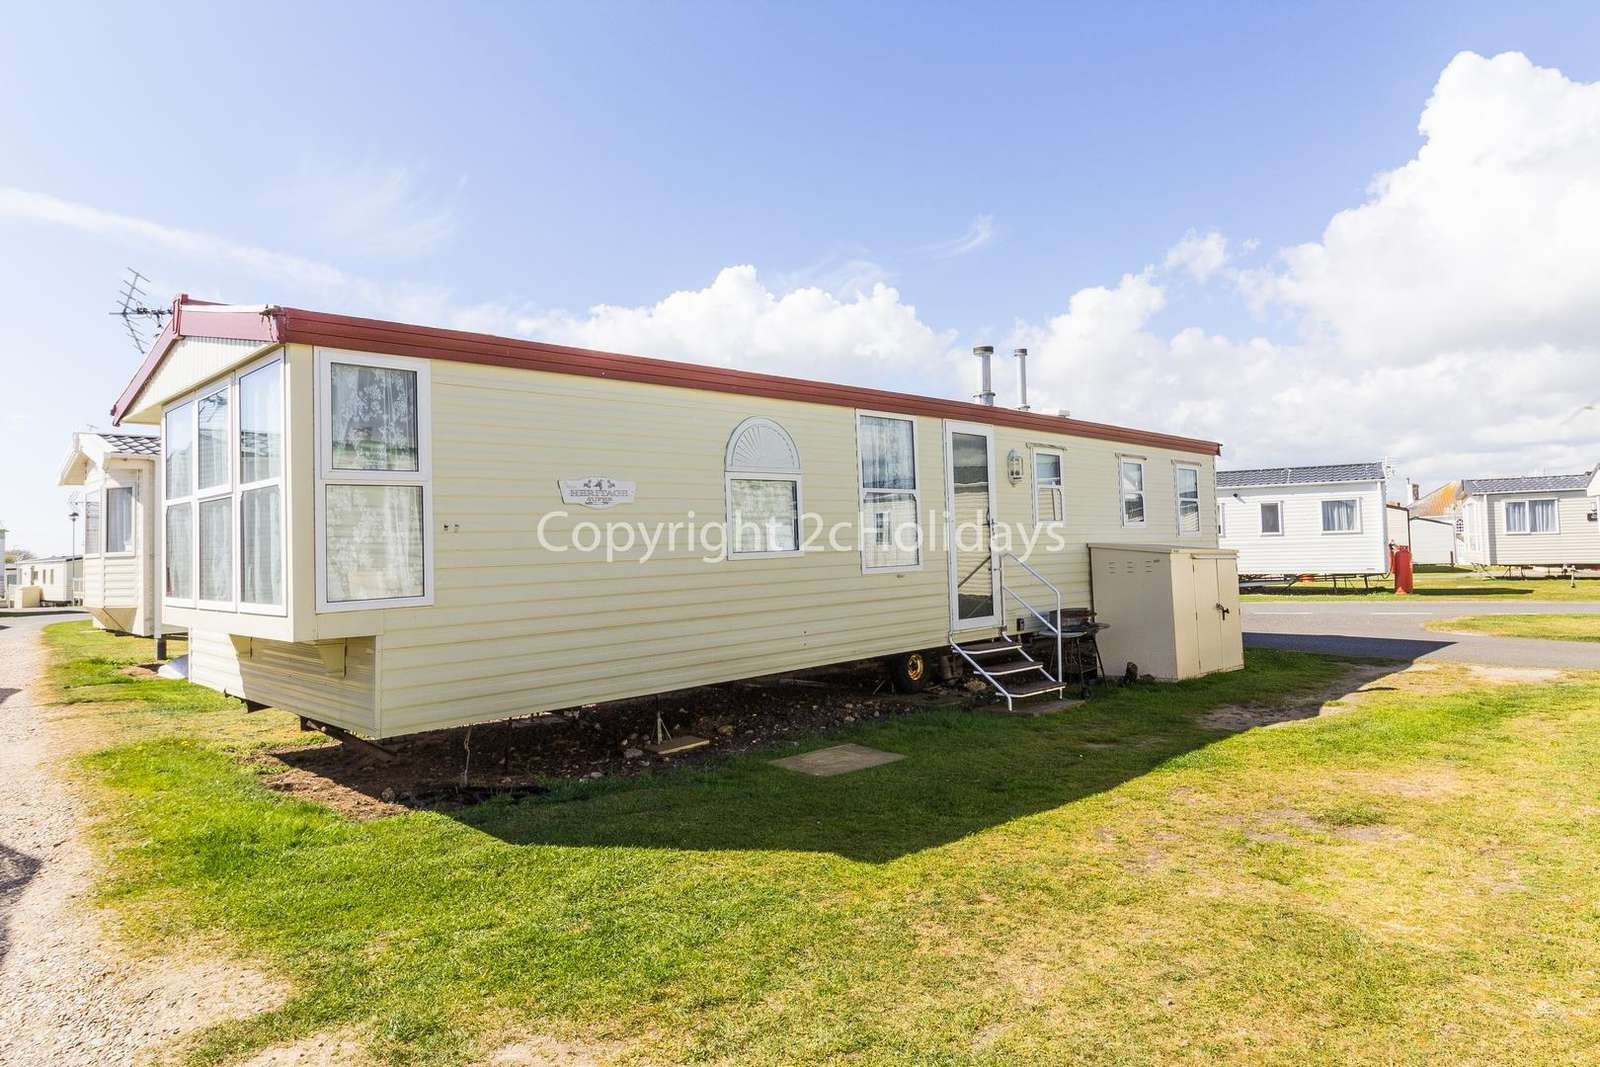 Lovely holiday home with homely touches!